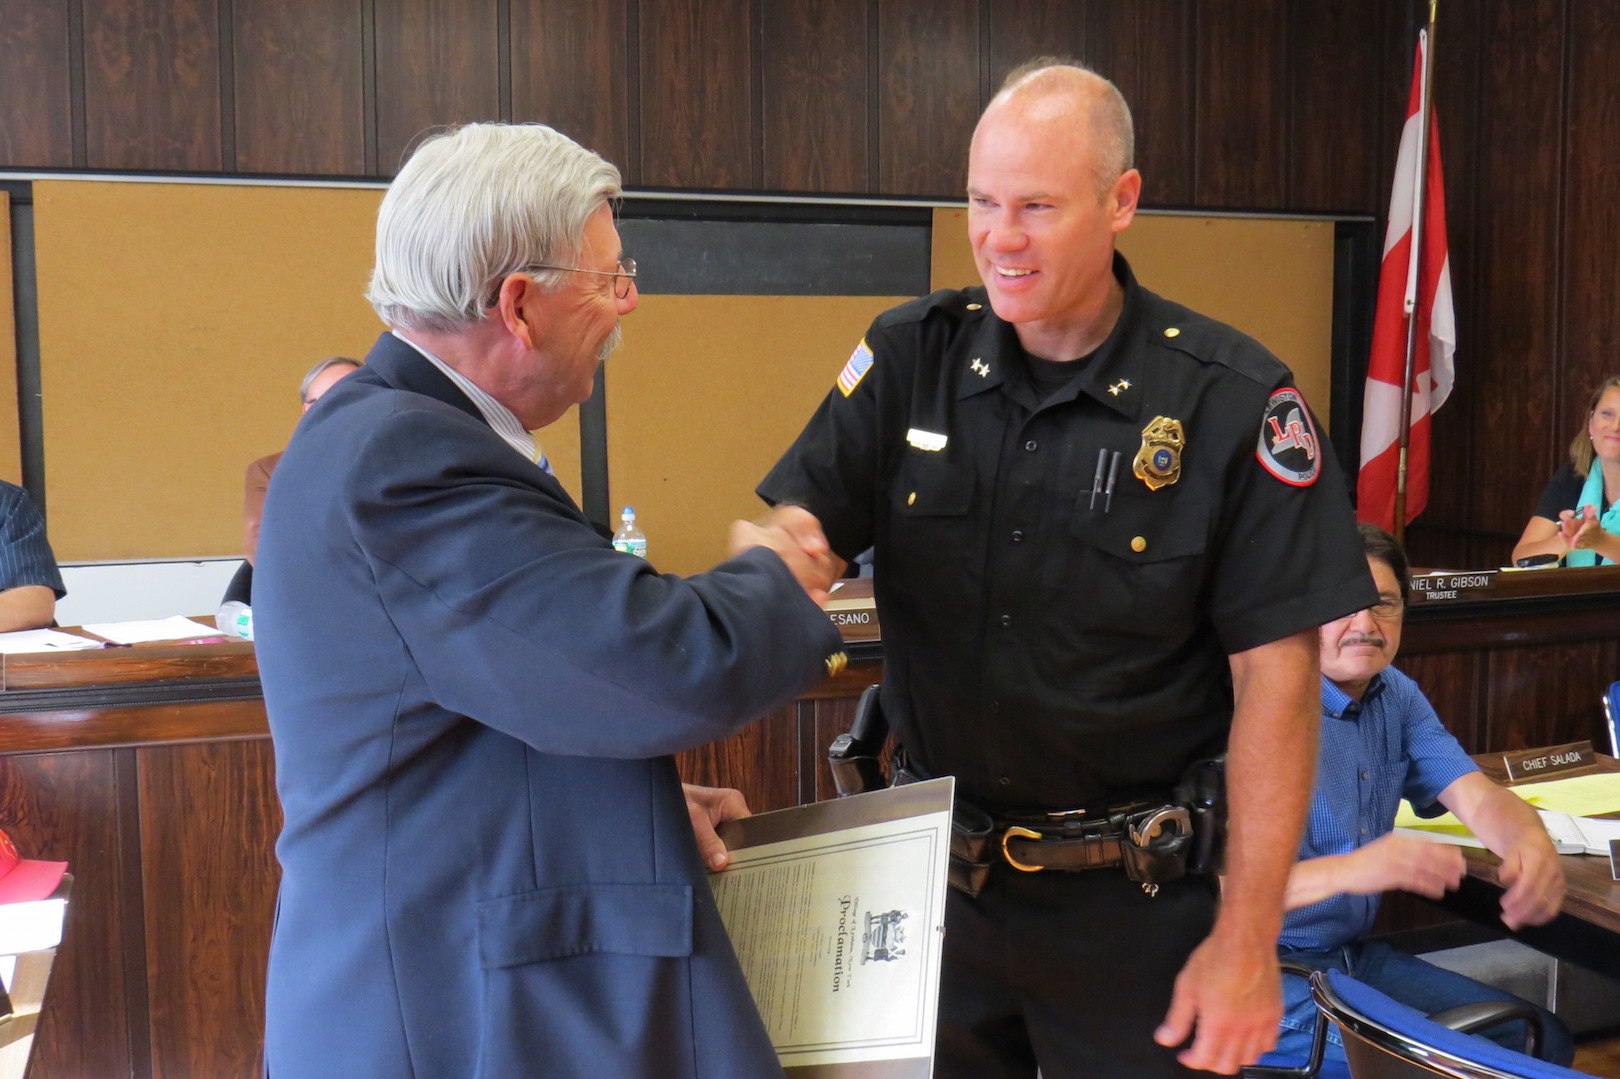 Mayor Terry Collesano congratulates retiring LPD Chief Chris Salada during a board meeting jULY 20.